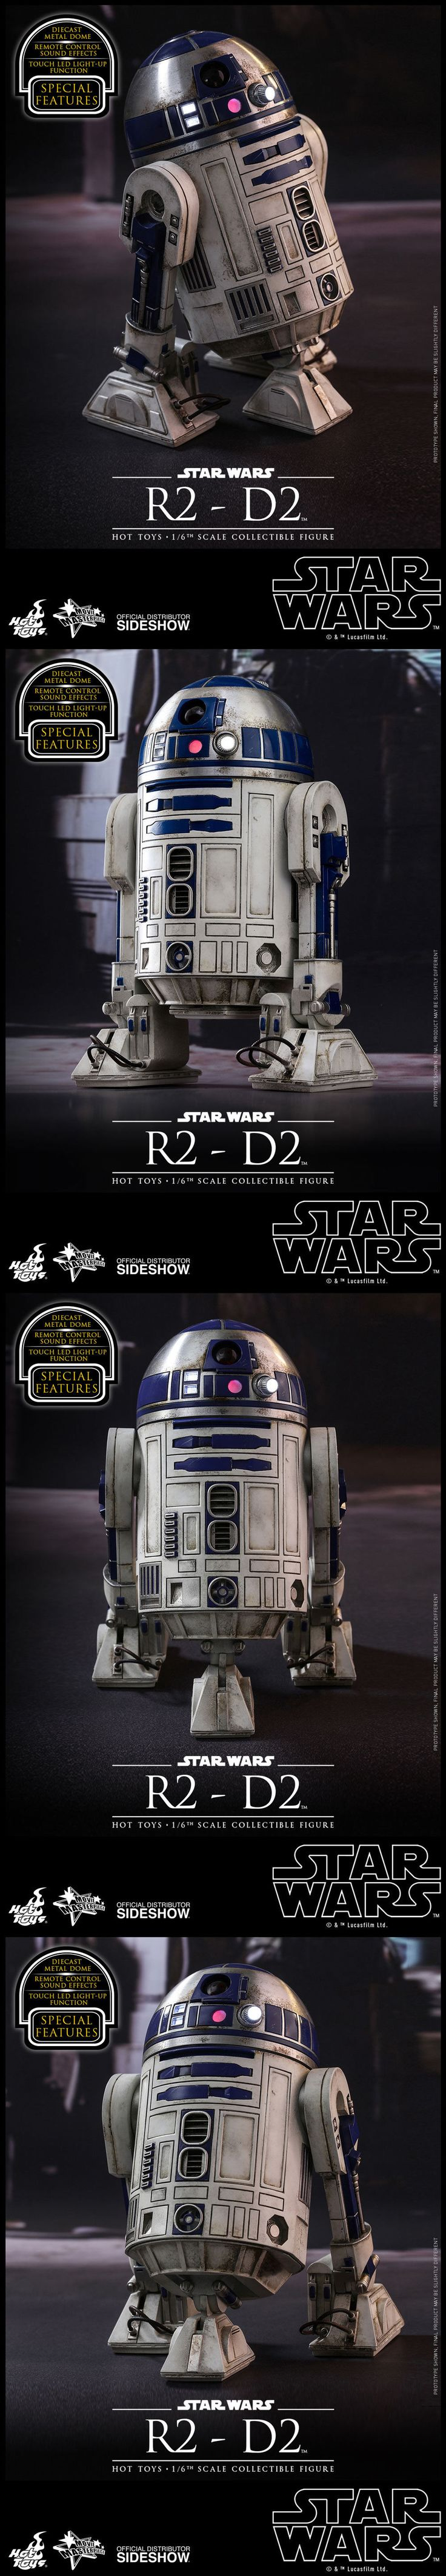 My r2 bb8 heart design is now a t shirt you can buy http tee pub - Tv Movie And Video Games 75708 Hot Toys R2 D2 Star Wars Episode Vii